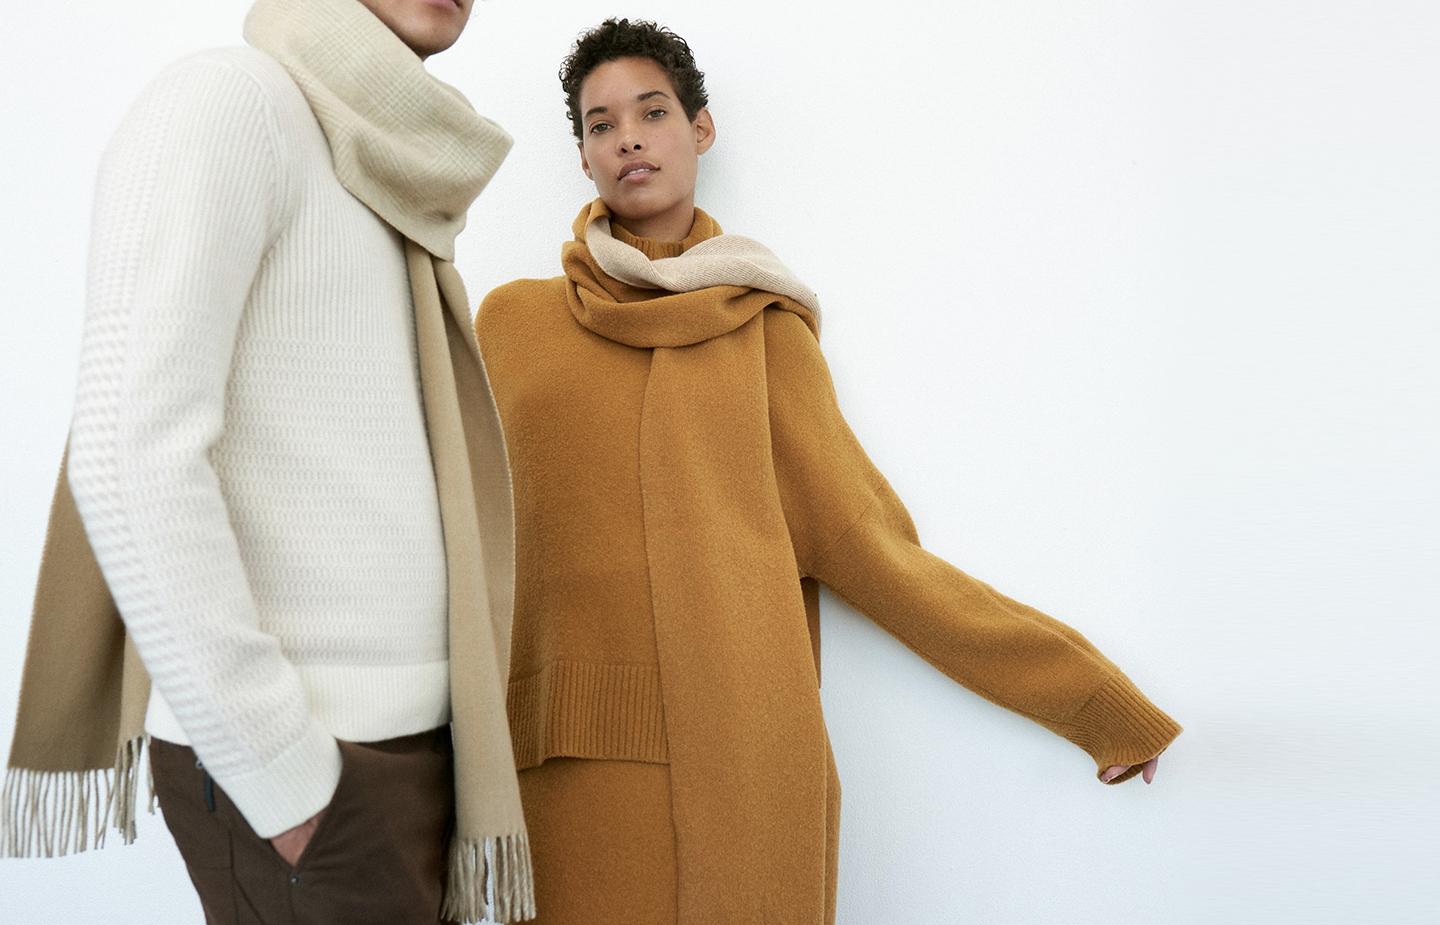 Men's and women's cashmere sweaters